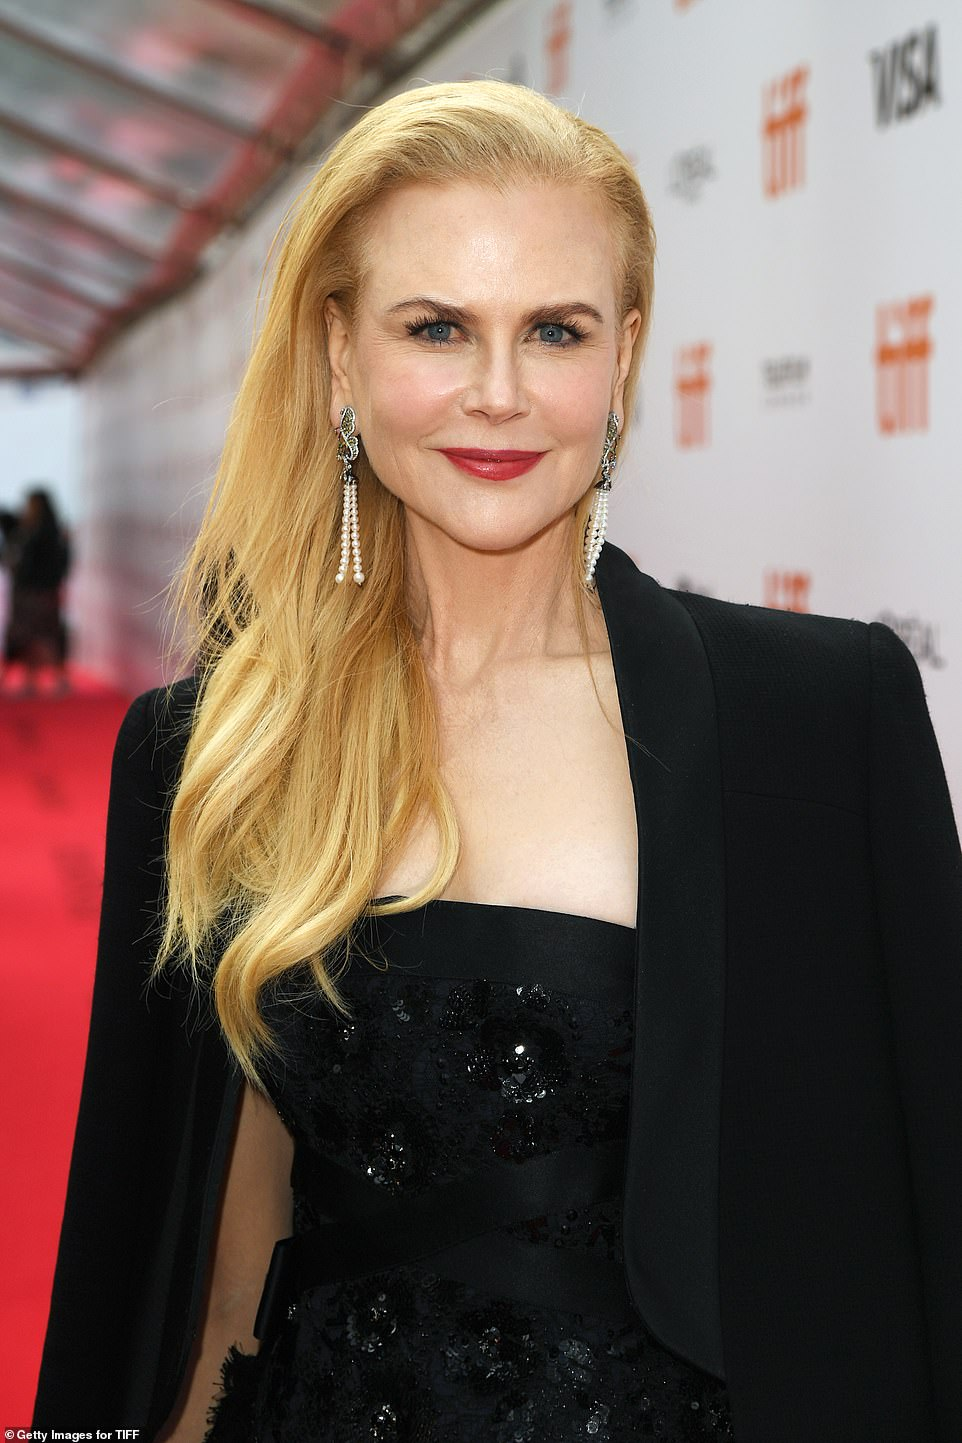 Nicole Kidman dazzles in Chanel Couture at The Goldfinch TIFF premiere